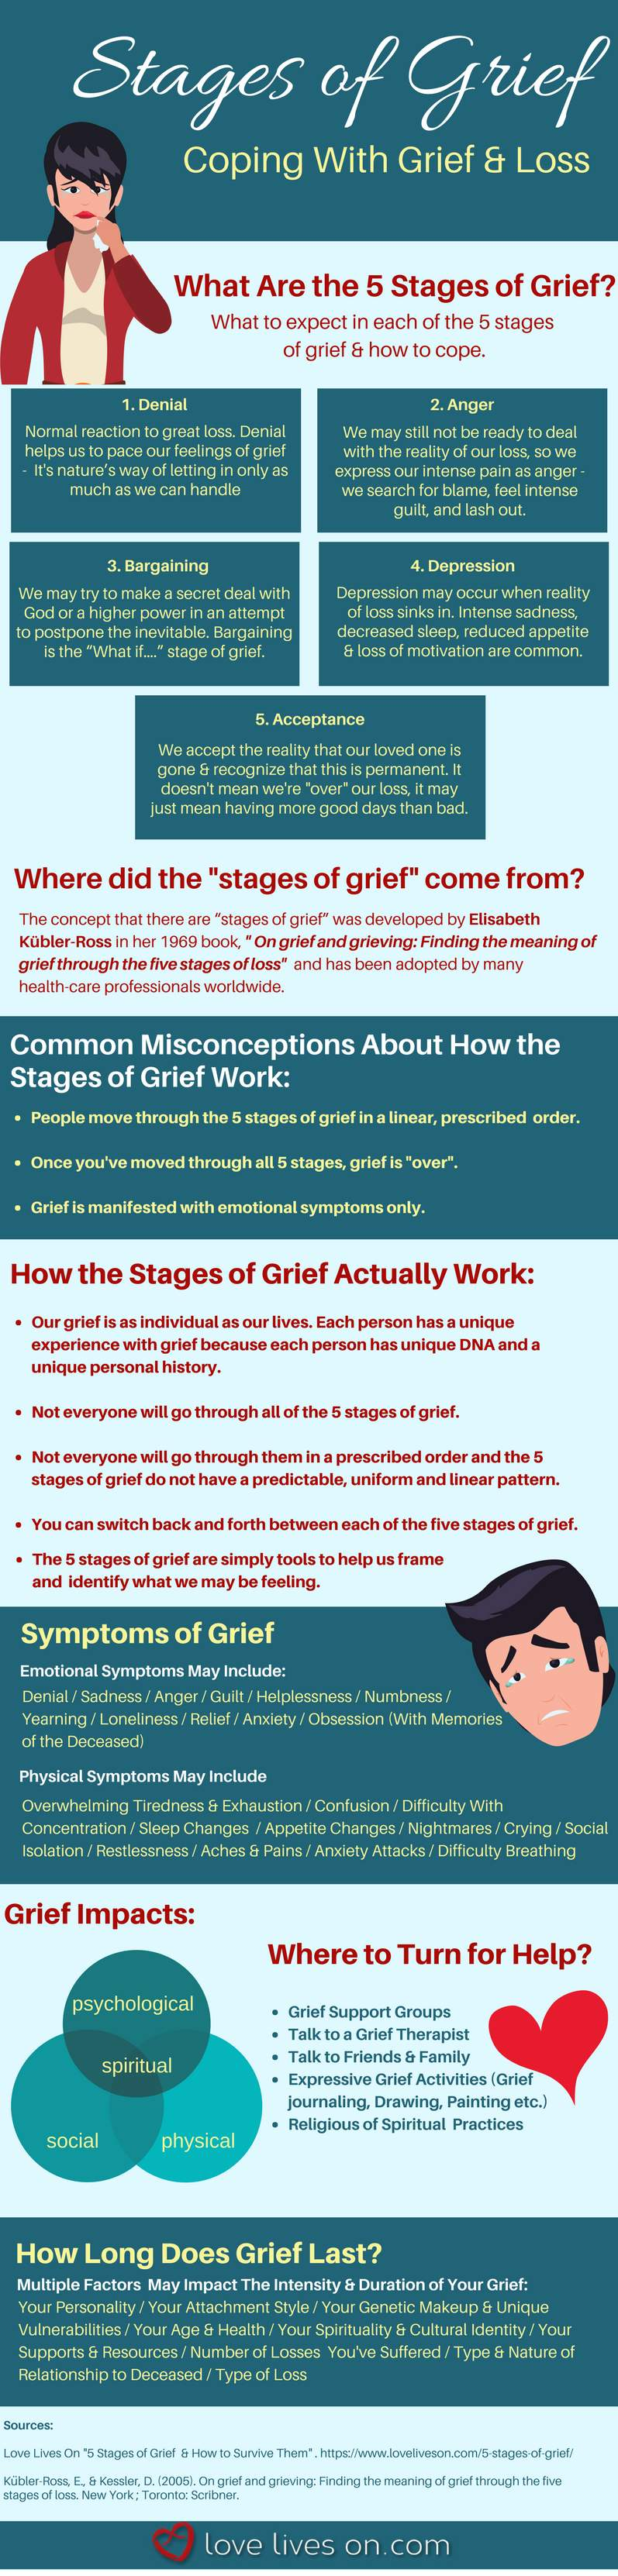 5 Stages of Grief How to Survive Them Infographic